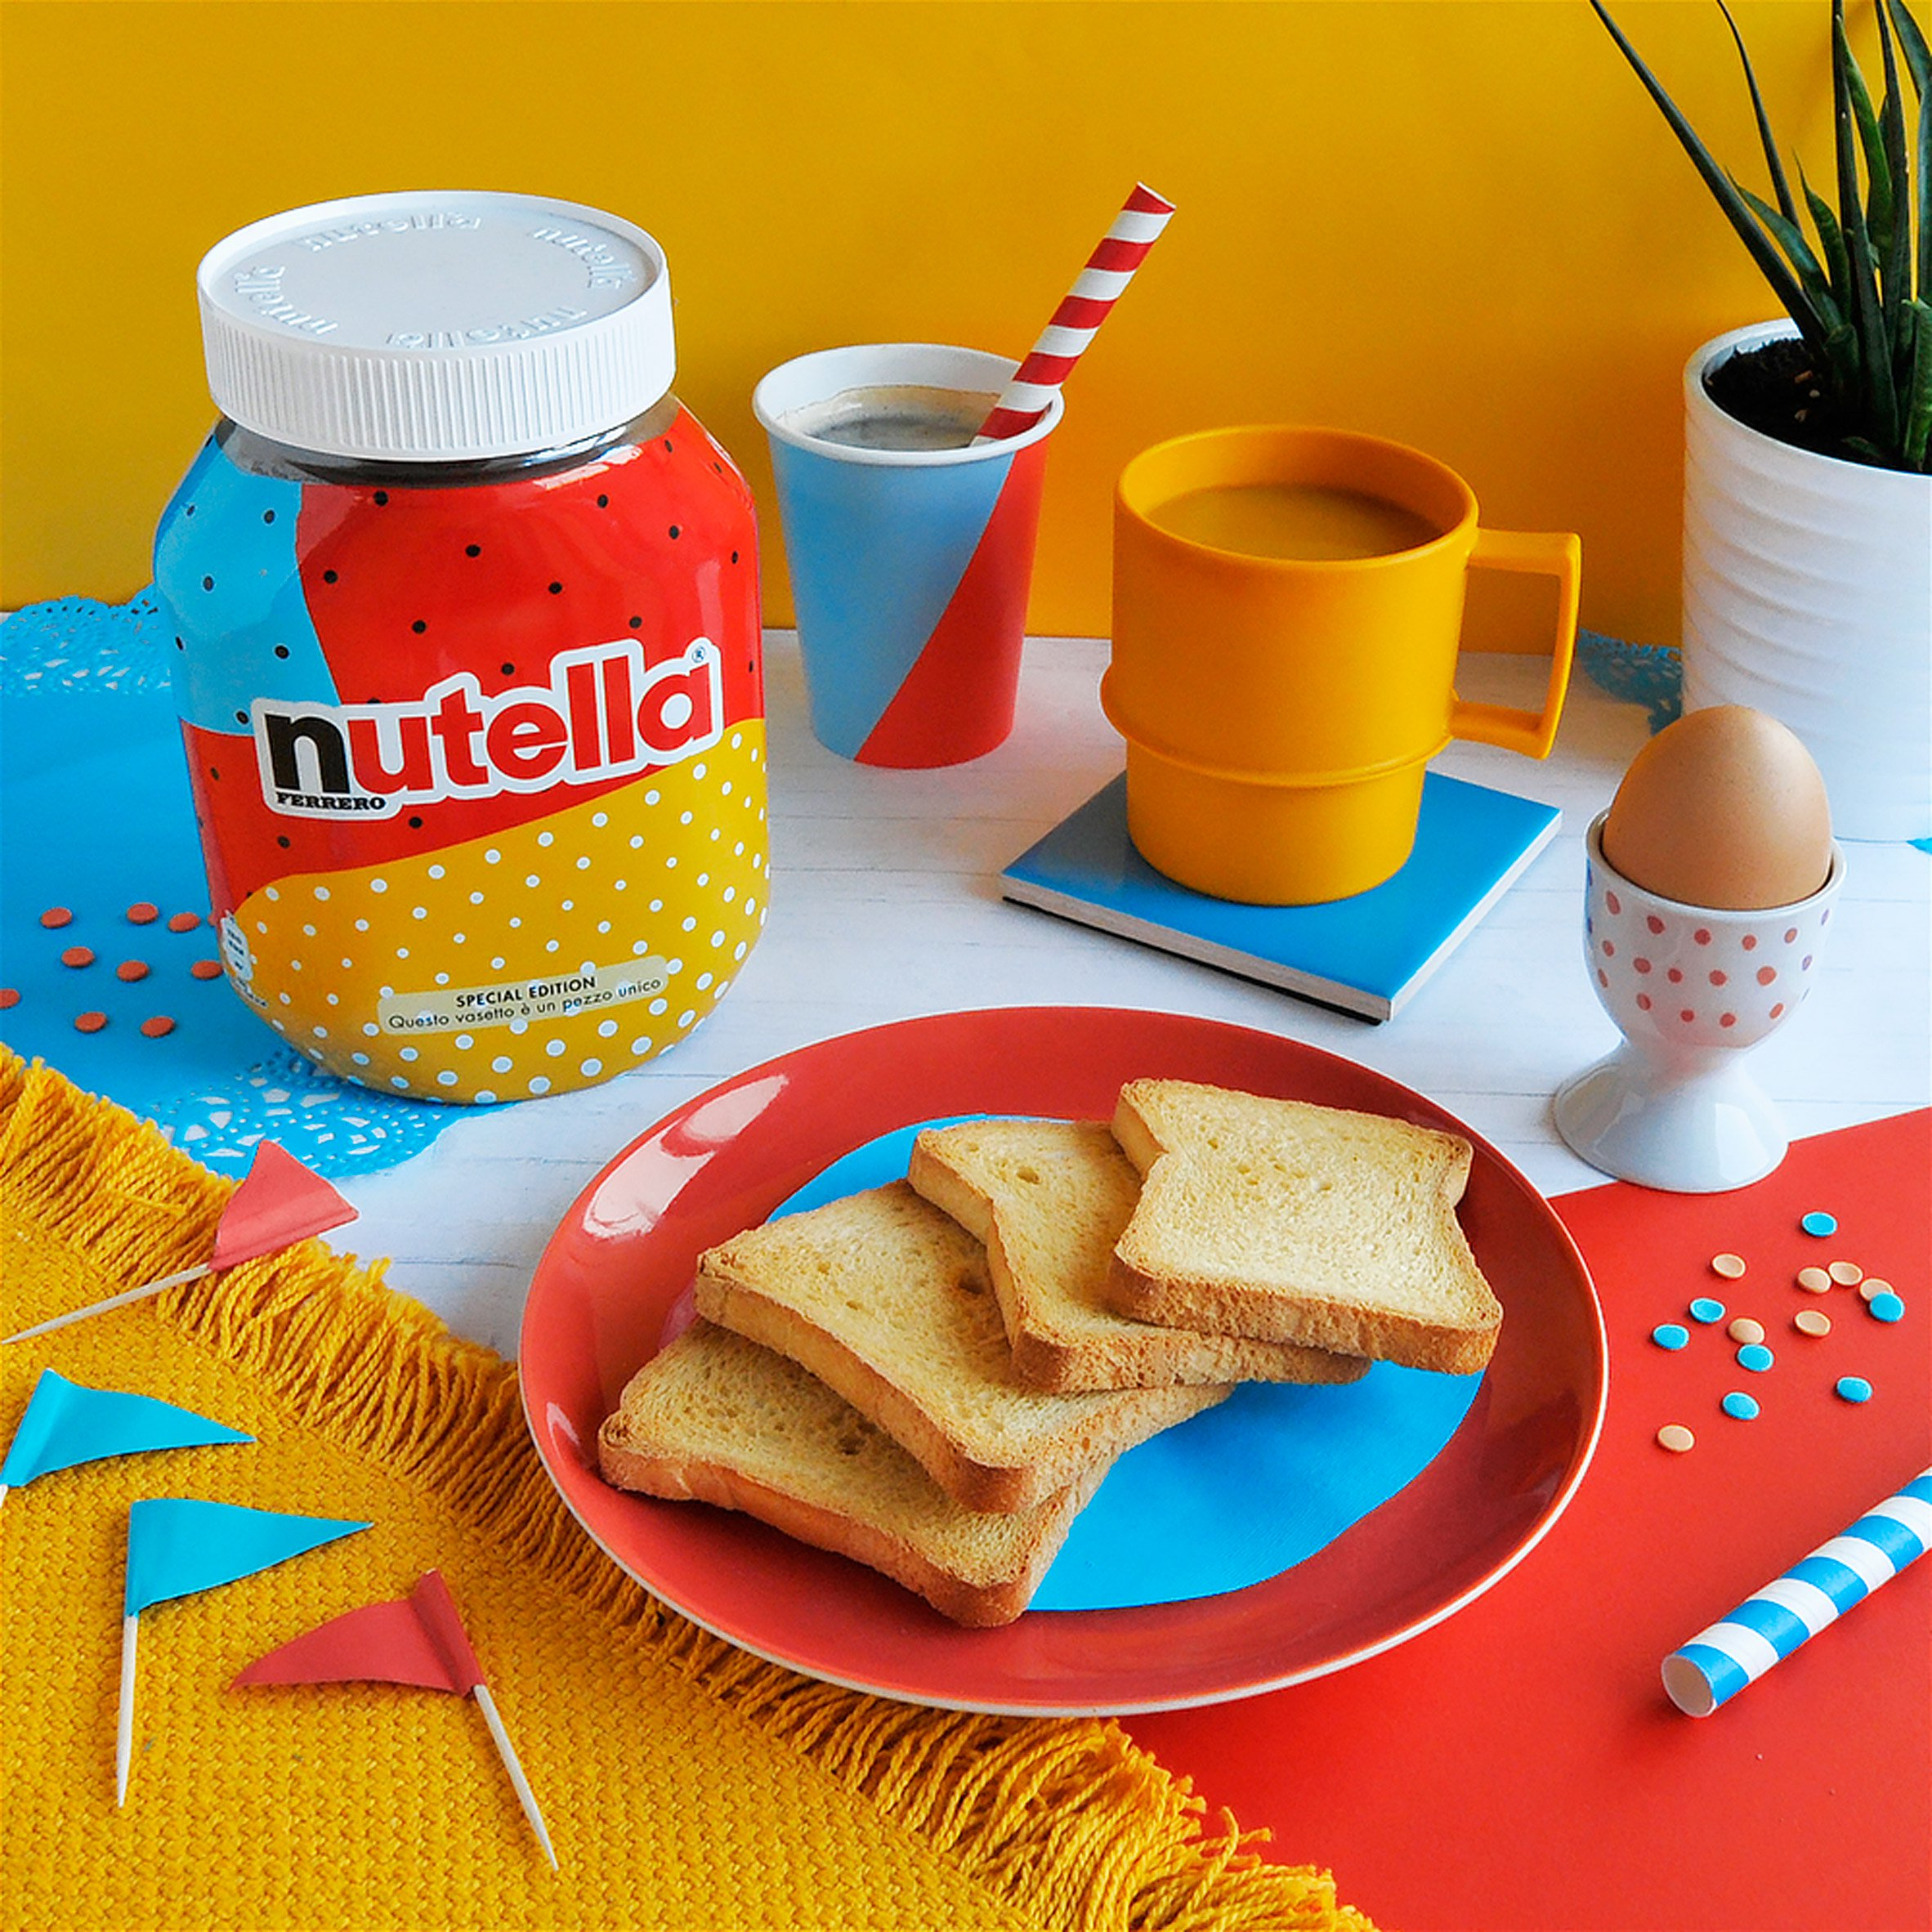 nutella-unica-packaging-design-products-_dezeen_2364_col_0